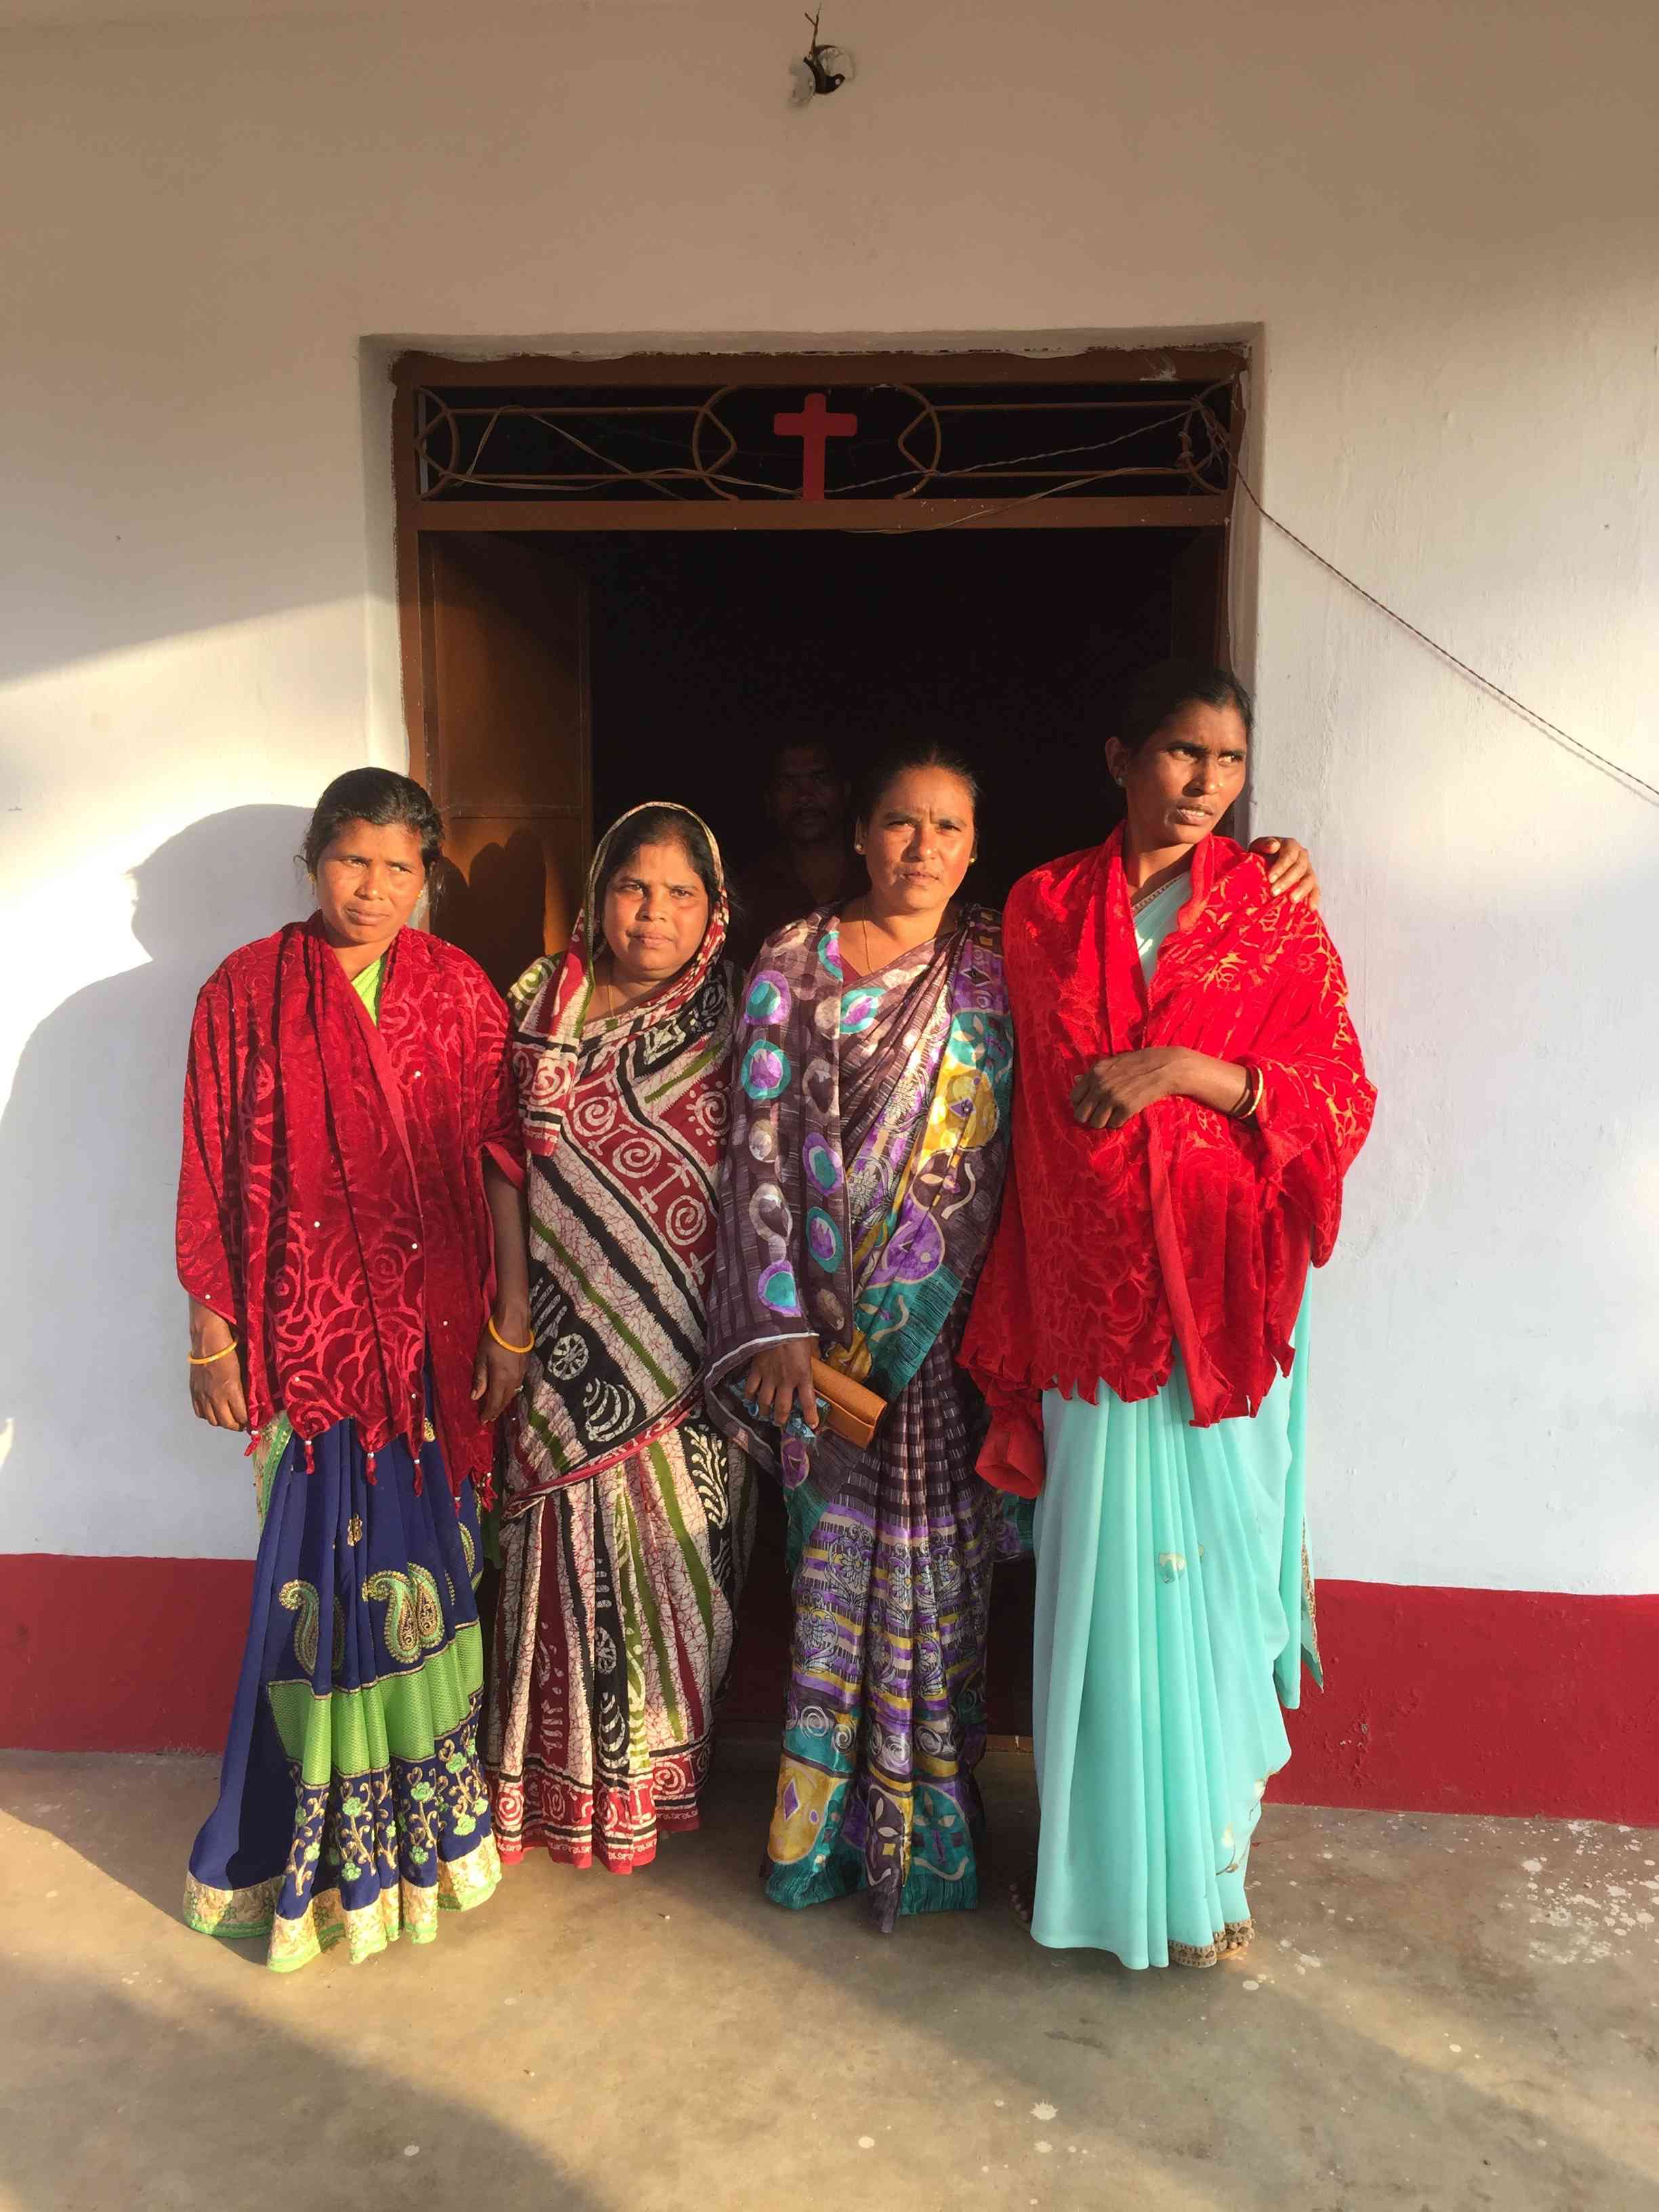 Pushpanjali Panda (second from left) and the other widows of Kandhamal still bear the burden of the vivid details of their husbands' deaths. (Credit: Priya Ramani)